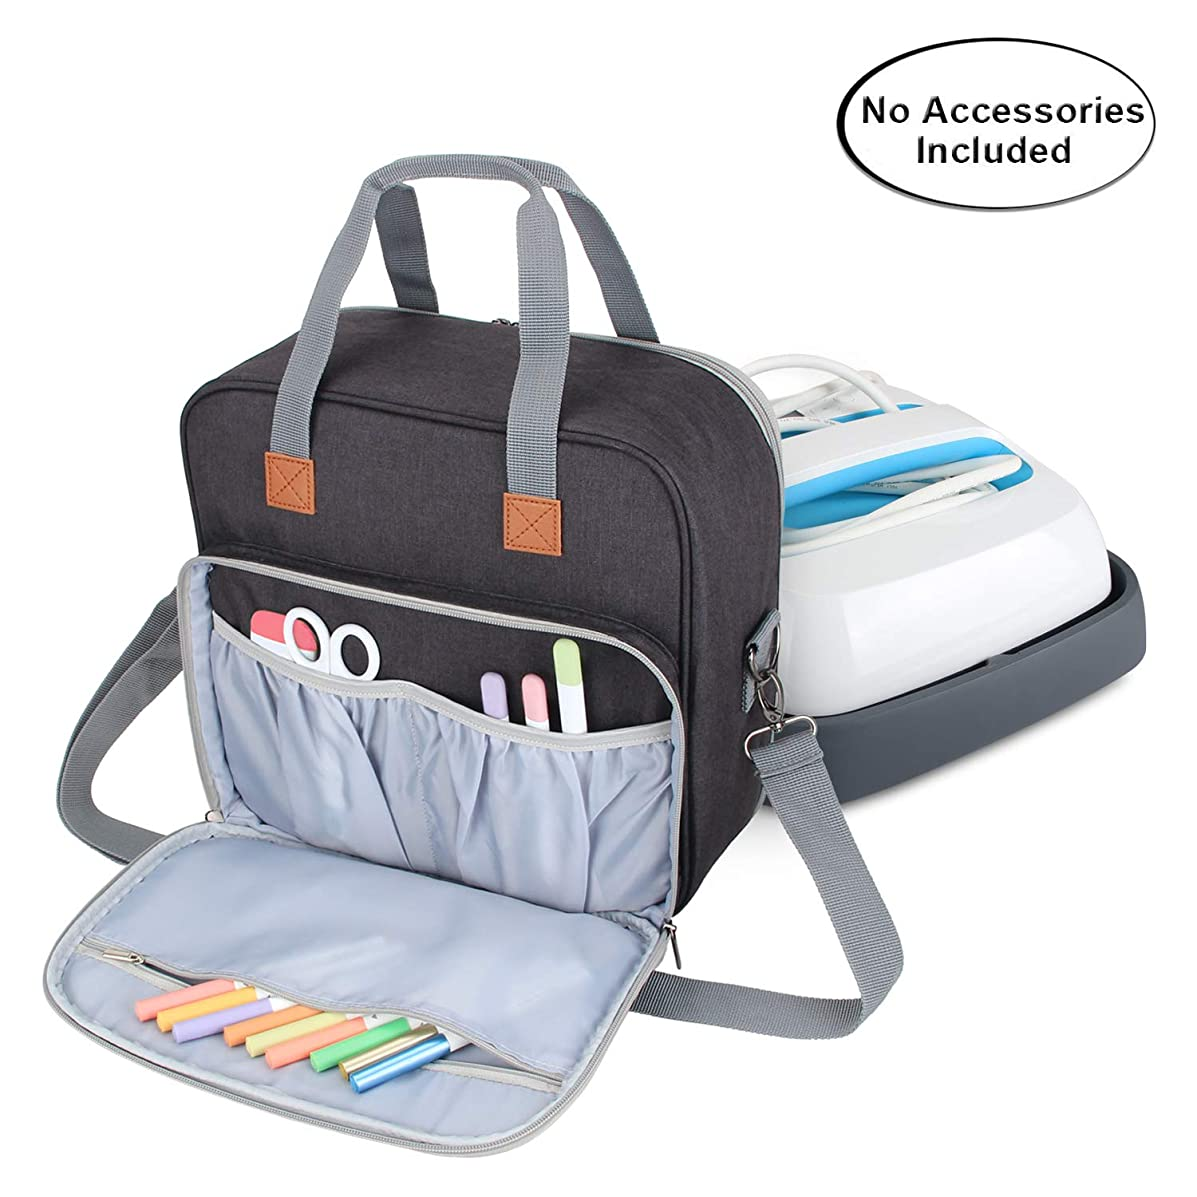 Luxja Carrying Case Compatible with Cricut Easy Press (9 inches x 9 inches), Tote Bag Compatible with Cricut Easy Press and Supplies (Bag Only, Patent Pending), Black